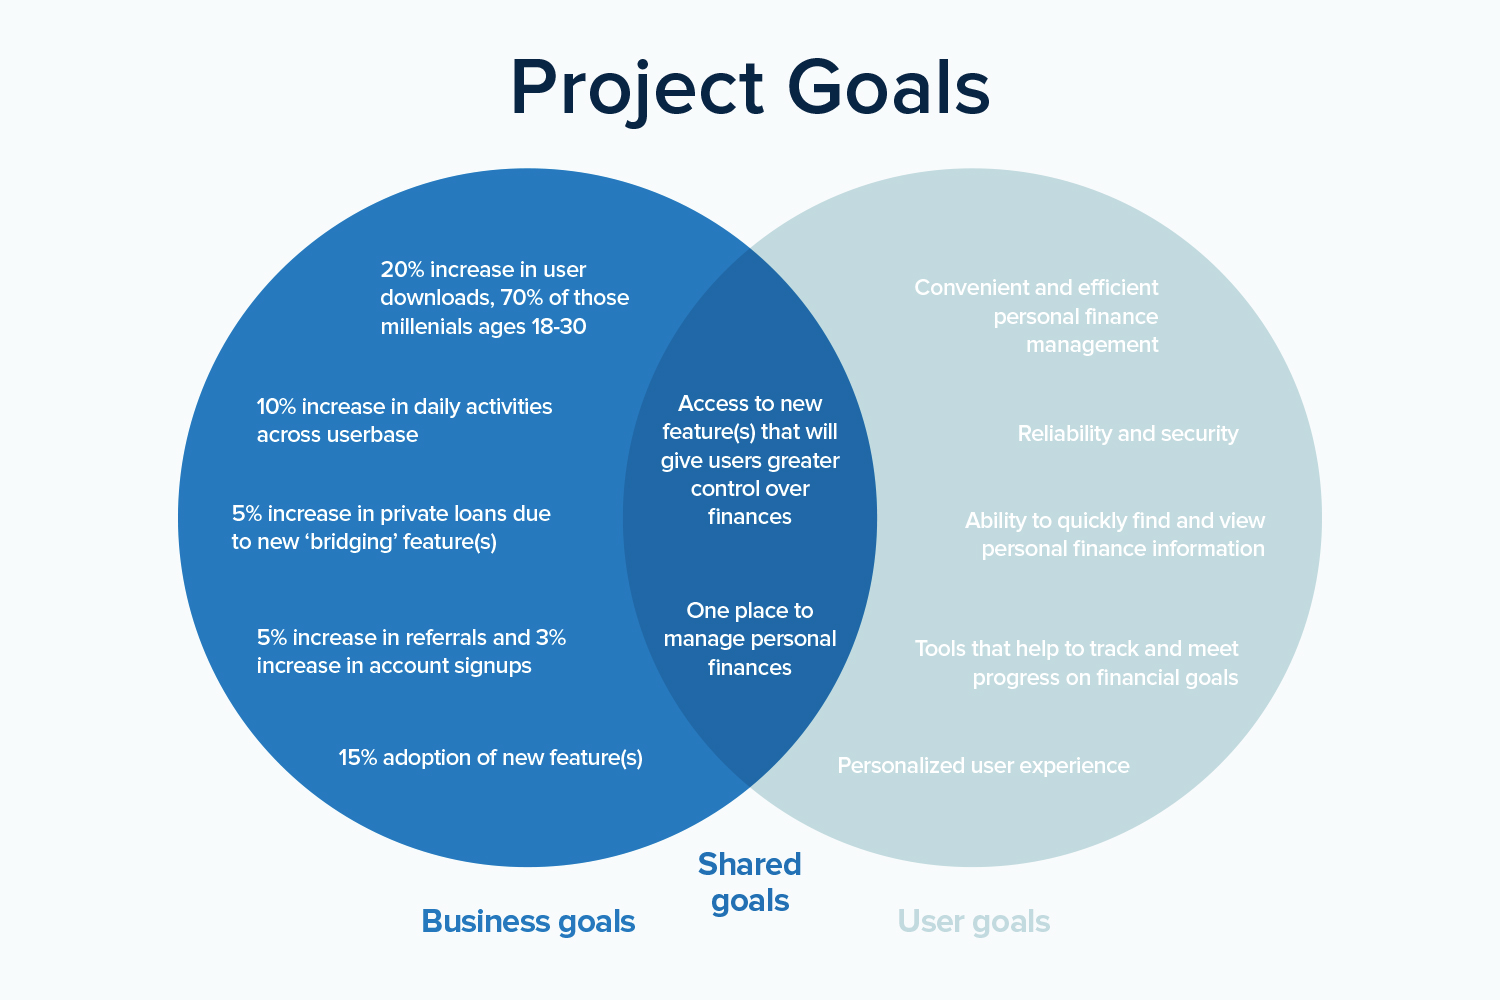 Project goals identified.